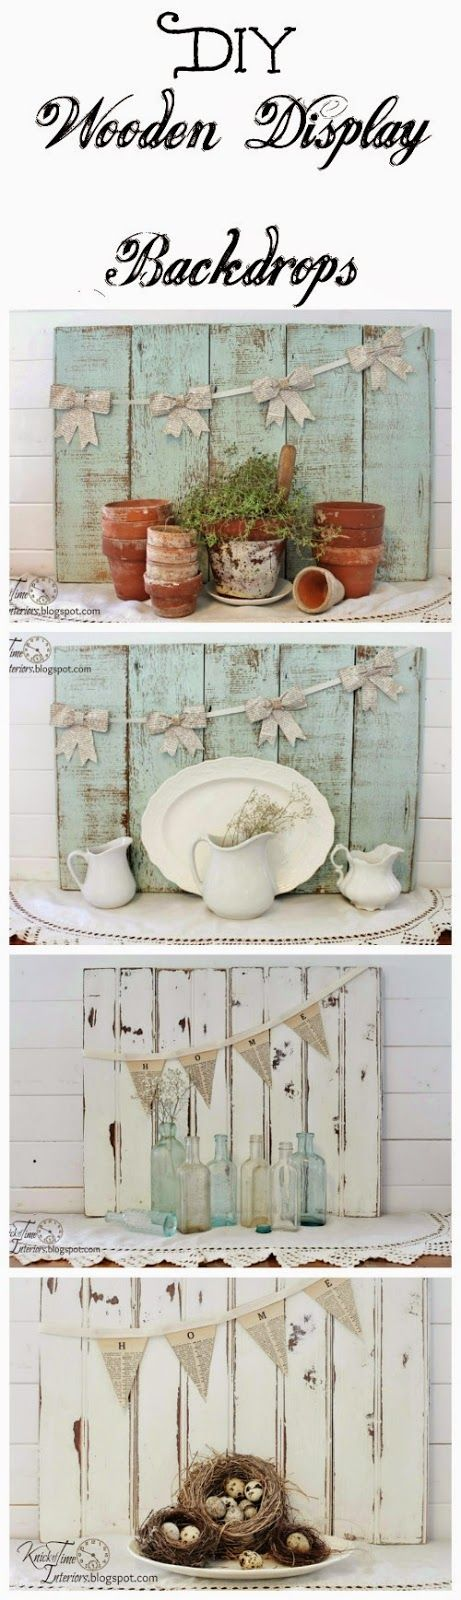 Create your own beautiful Display Backdrops! ~~via knickoftimeinteriors.blogspot.com